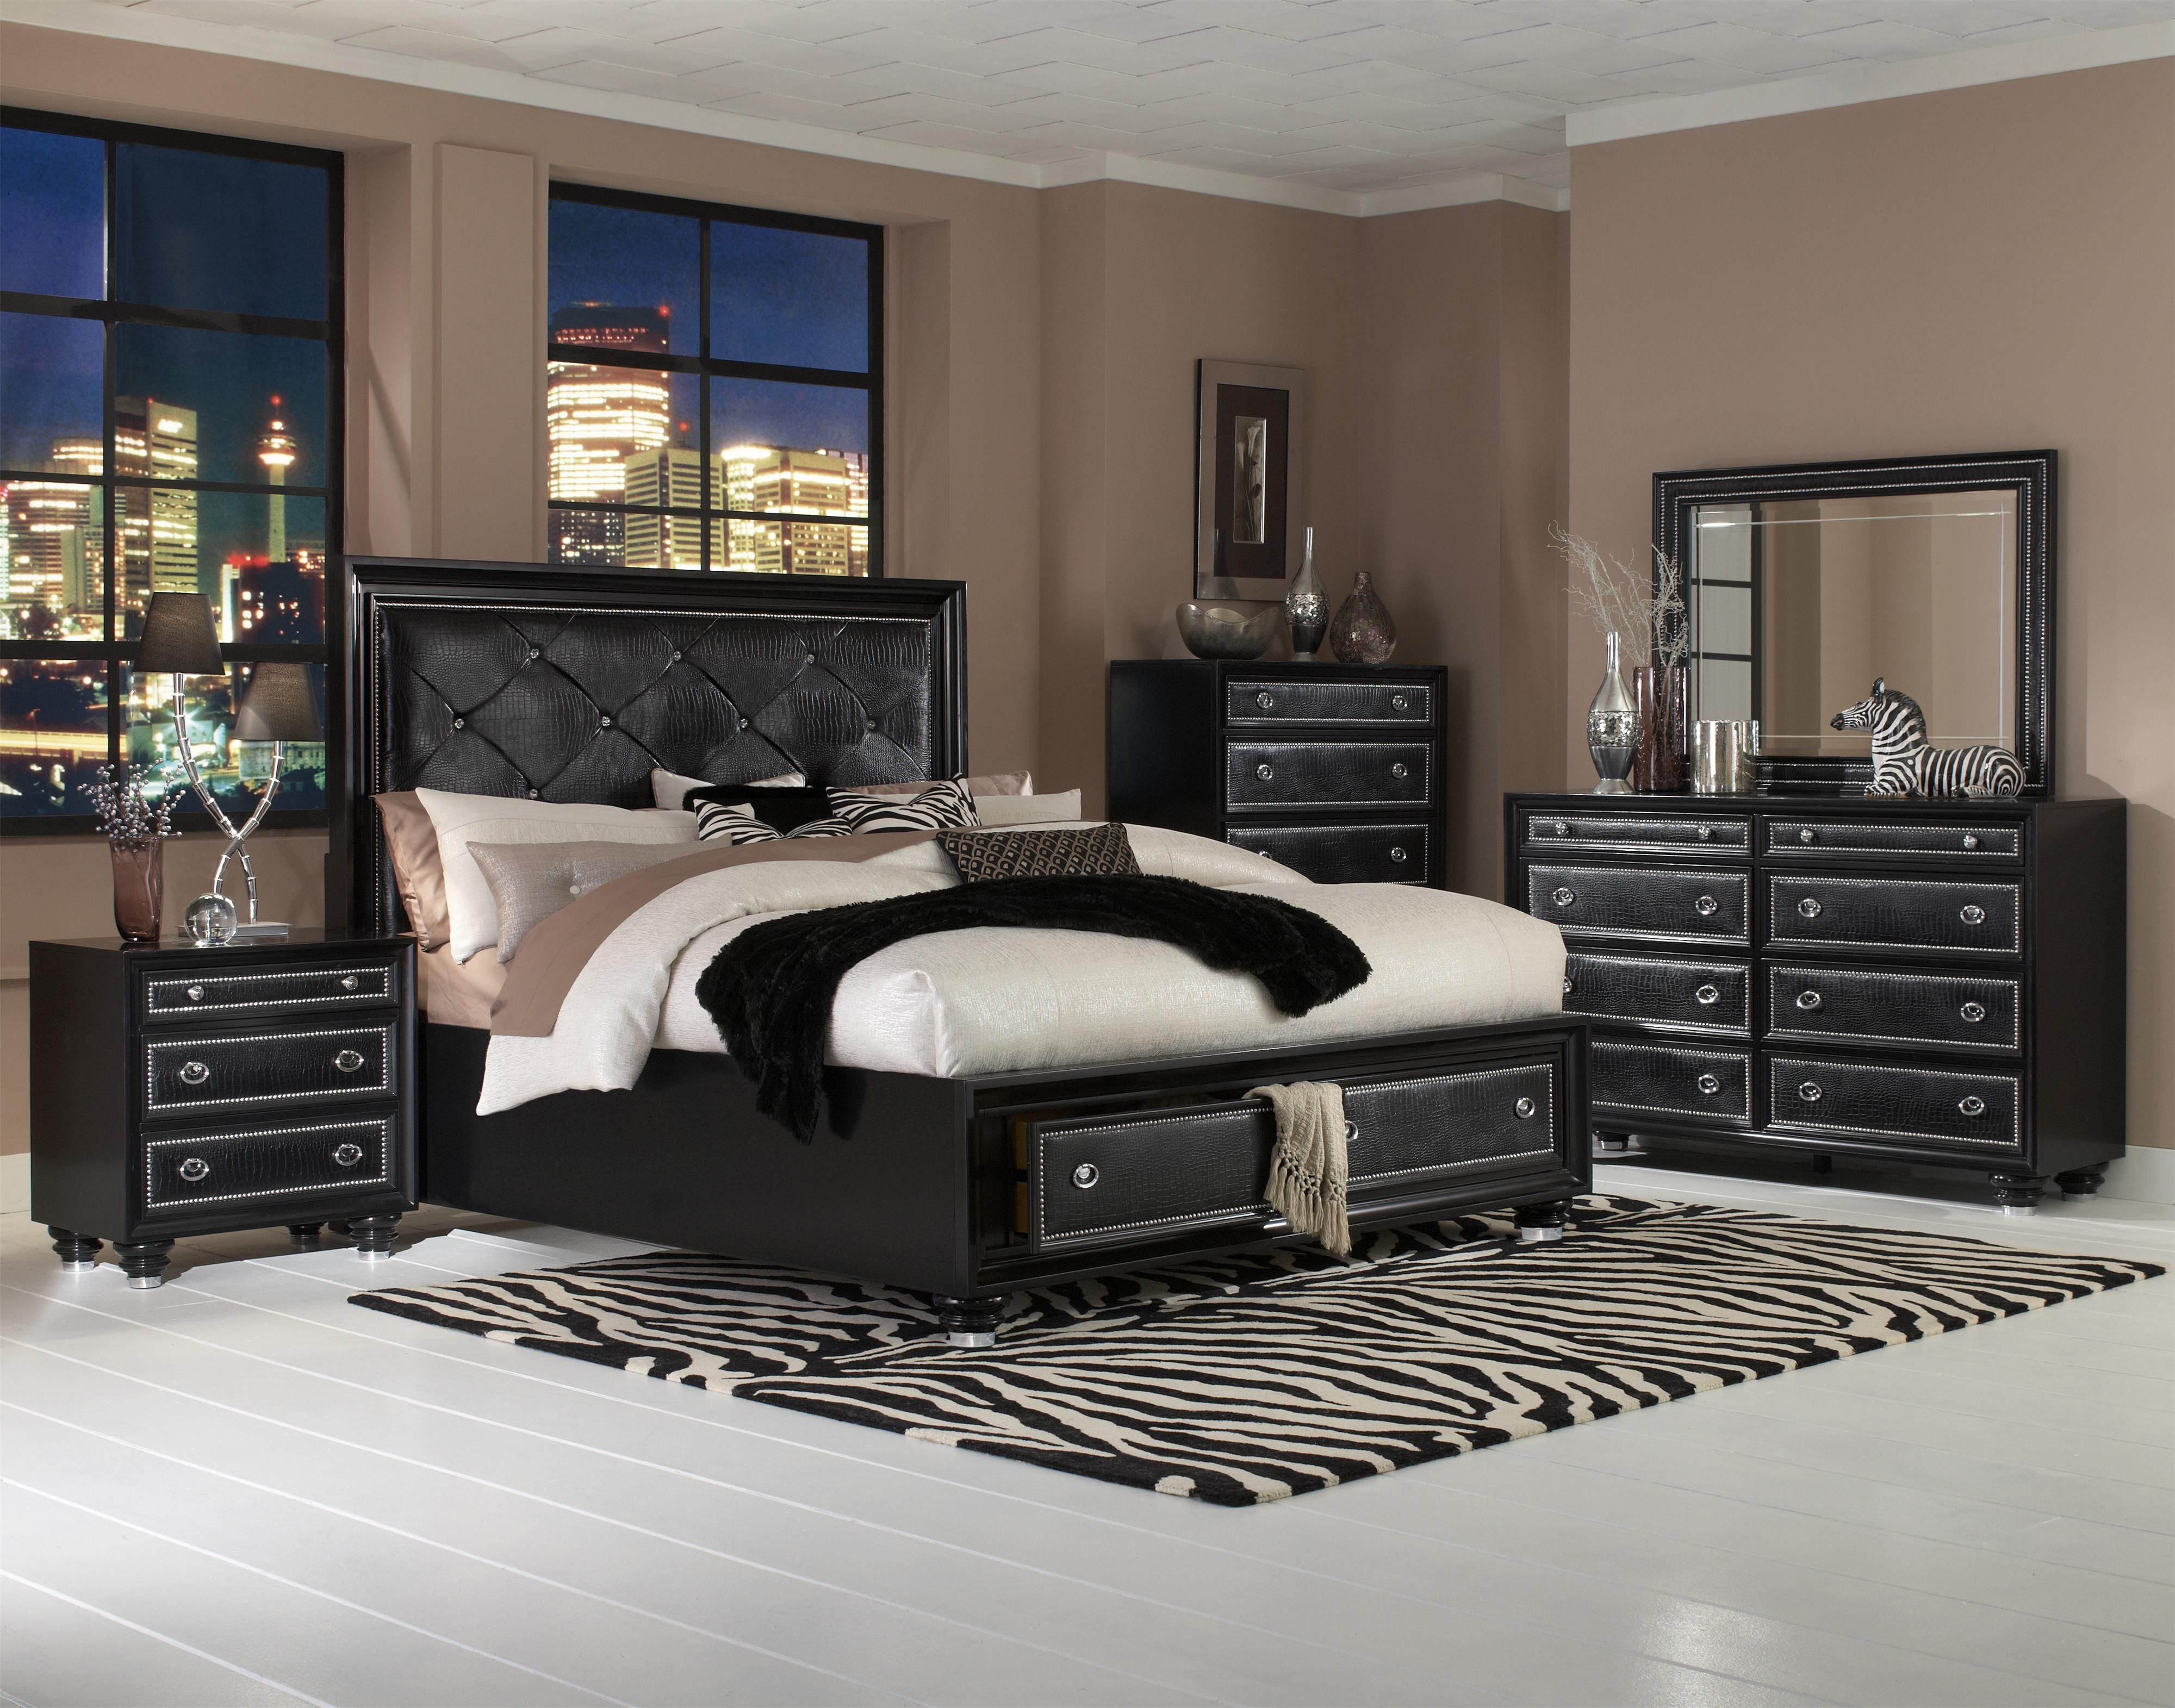 The Island Storage Bed offers a haute couture frame for the modern